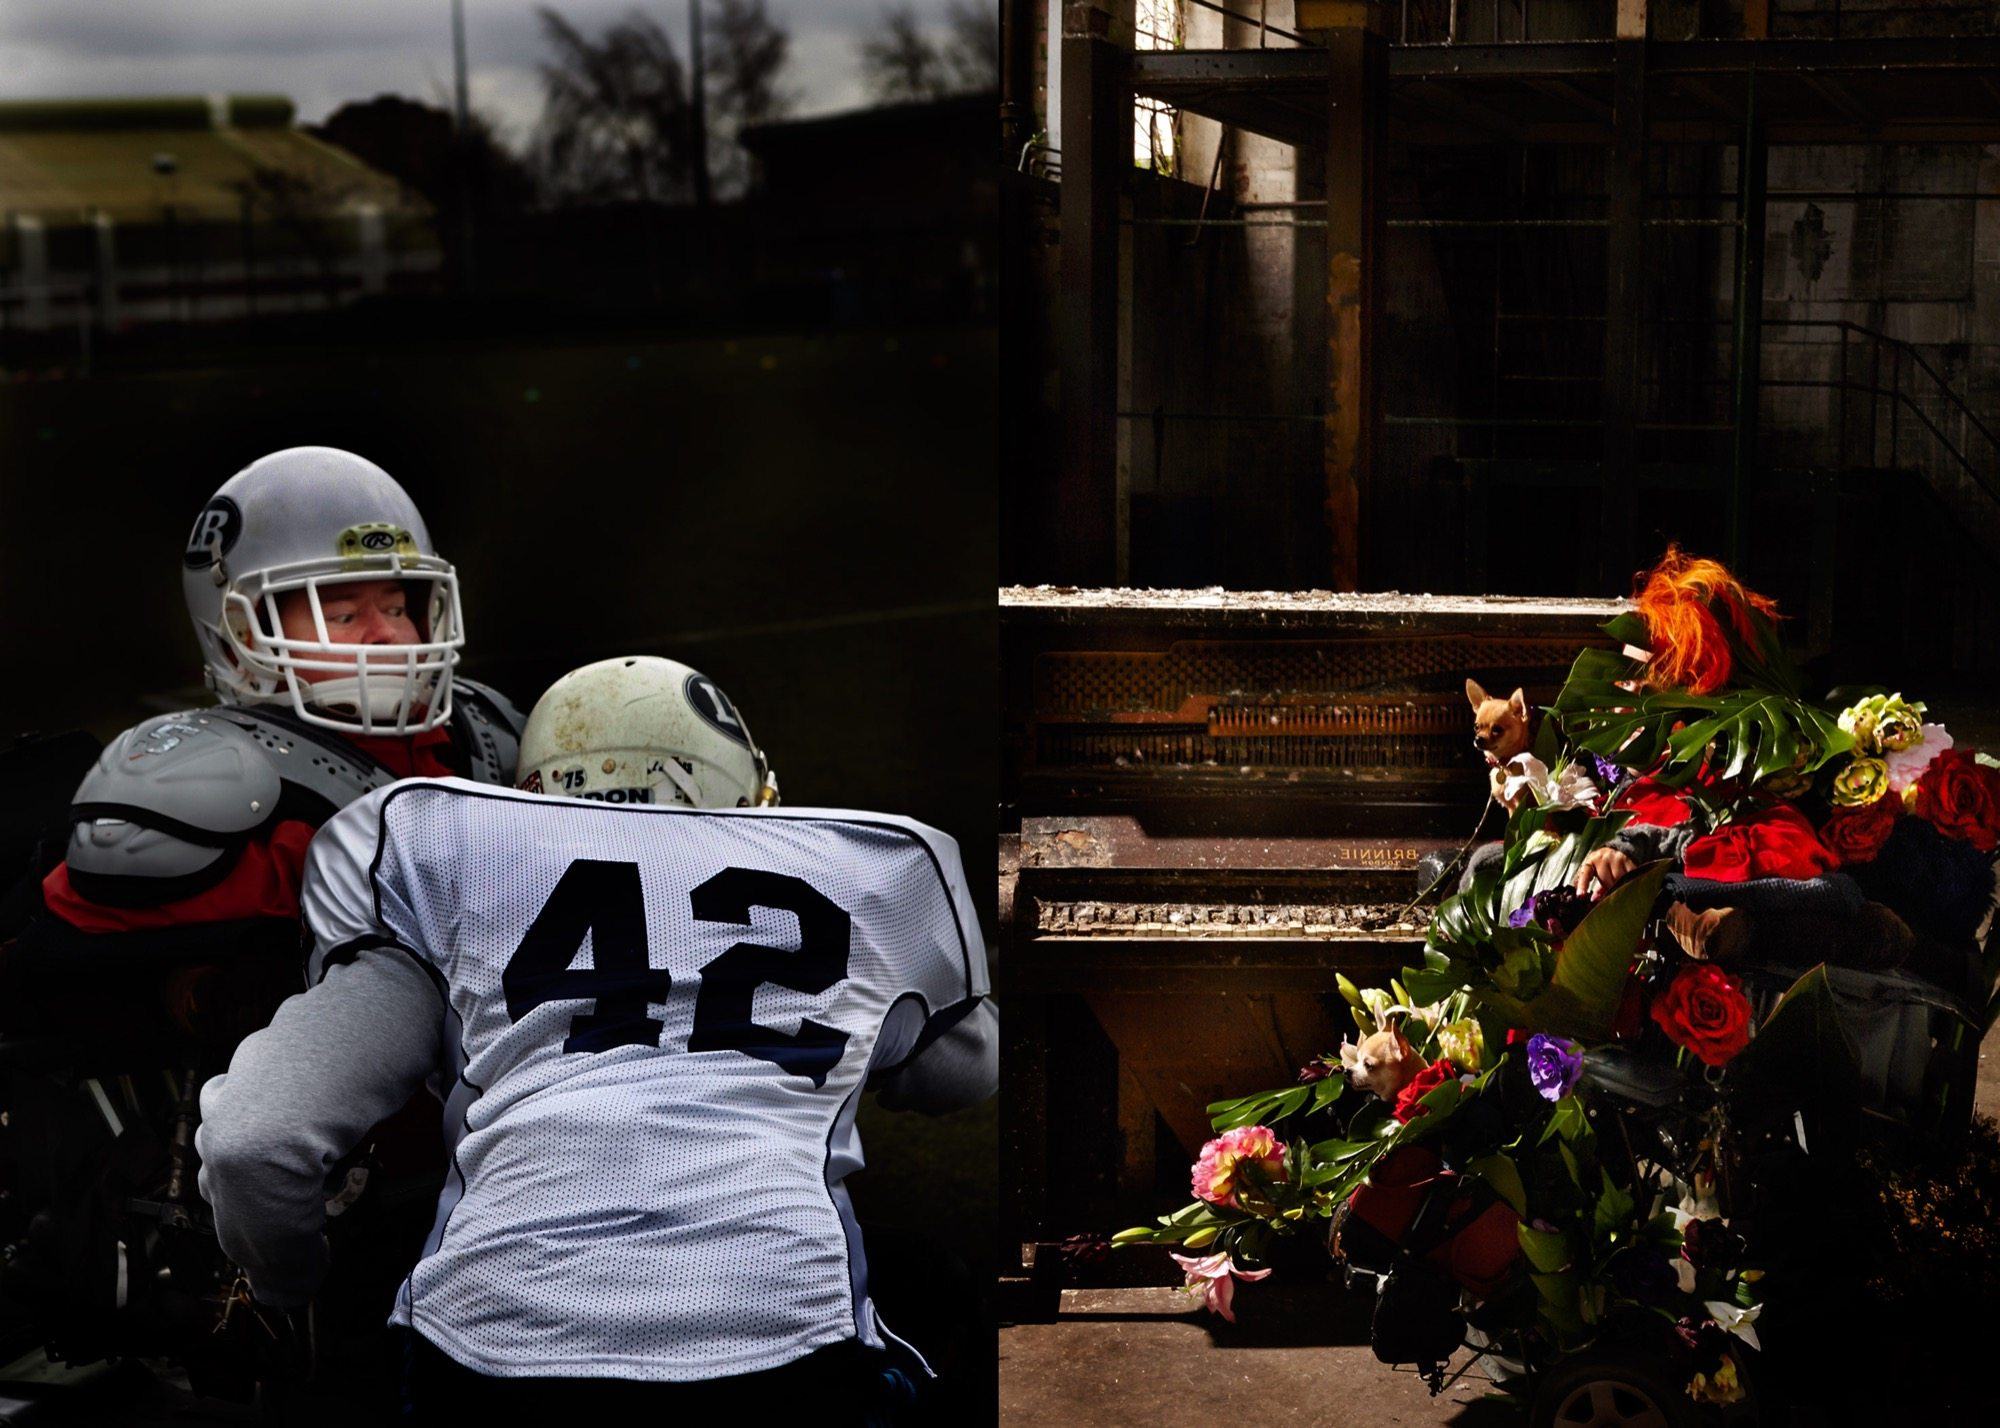 A composite image: Katherine Araniello and Aaron Williamson playing american football left hand side; right hand side katherin araniello covered in flowers